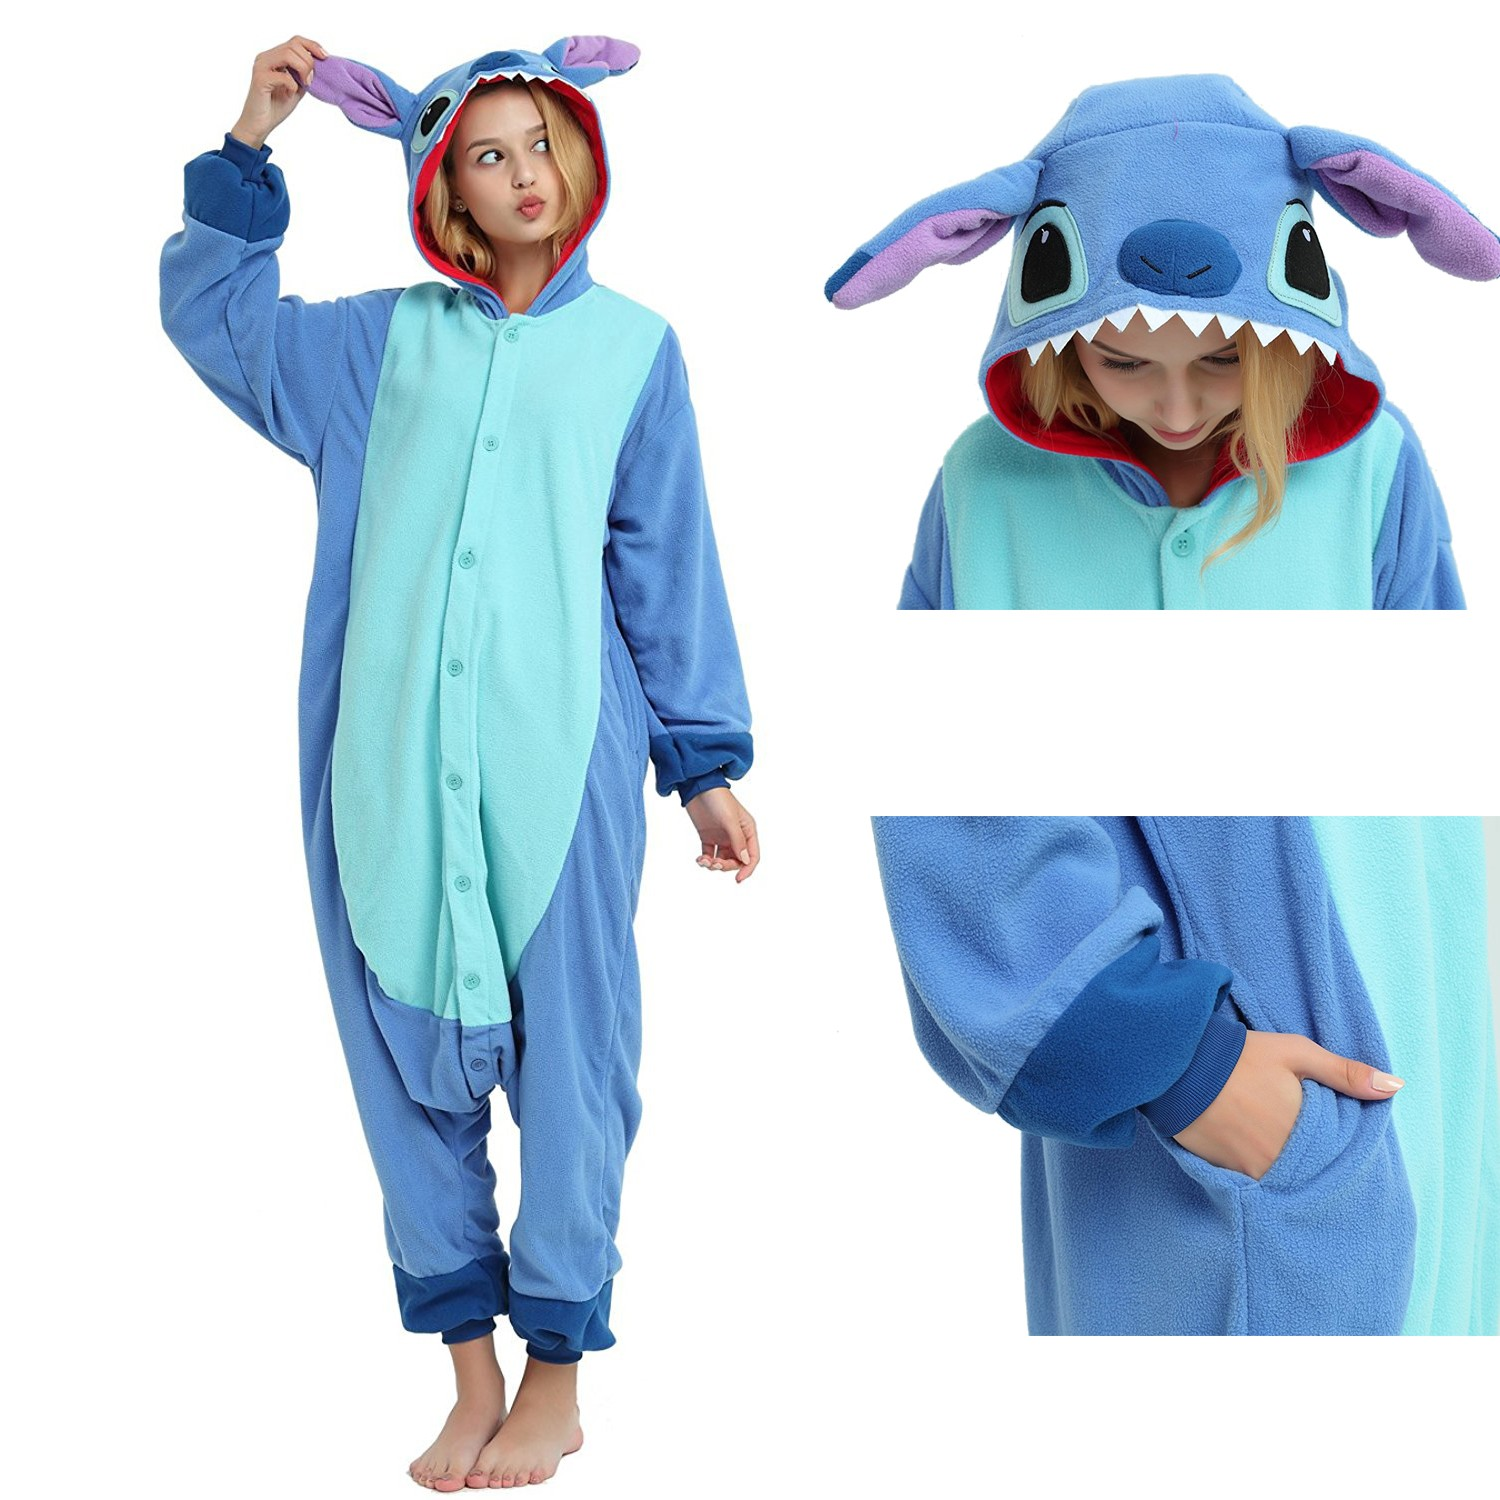 756793002ad9 Stitch Onesie Unisex Women & Men Kigurumi Pajama Disney Cosplay Party  Costumes